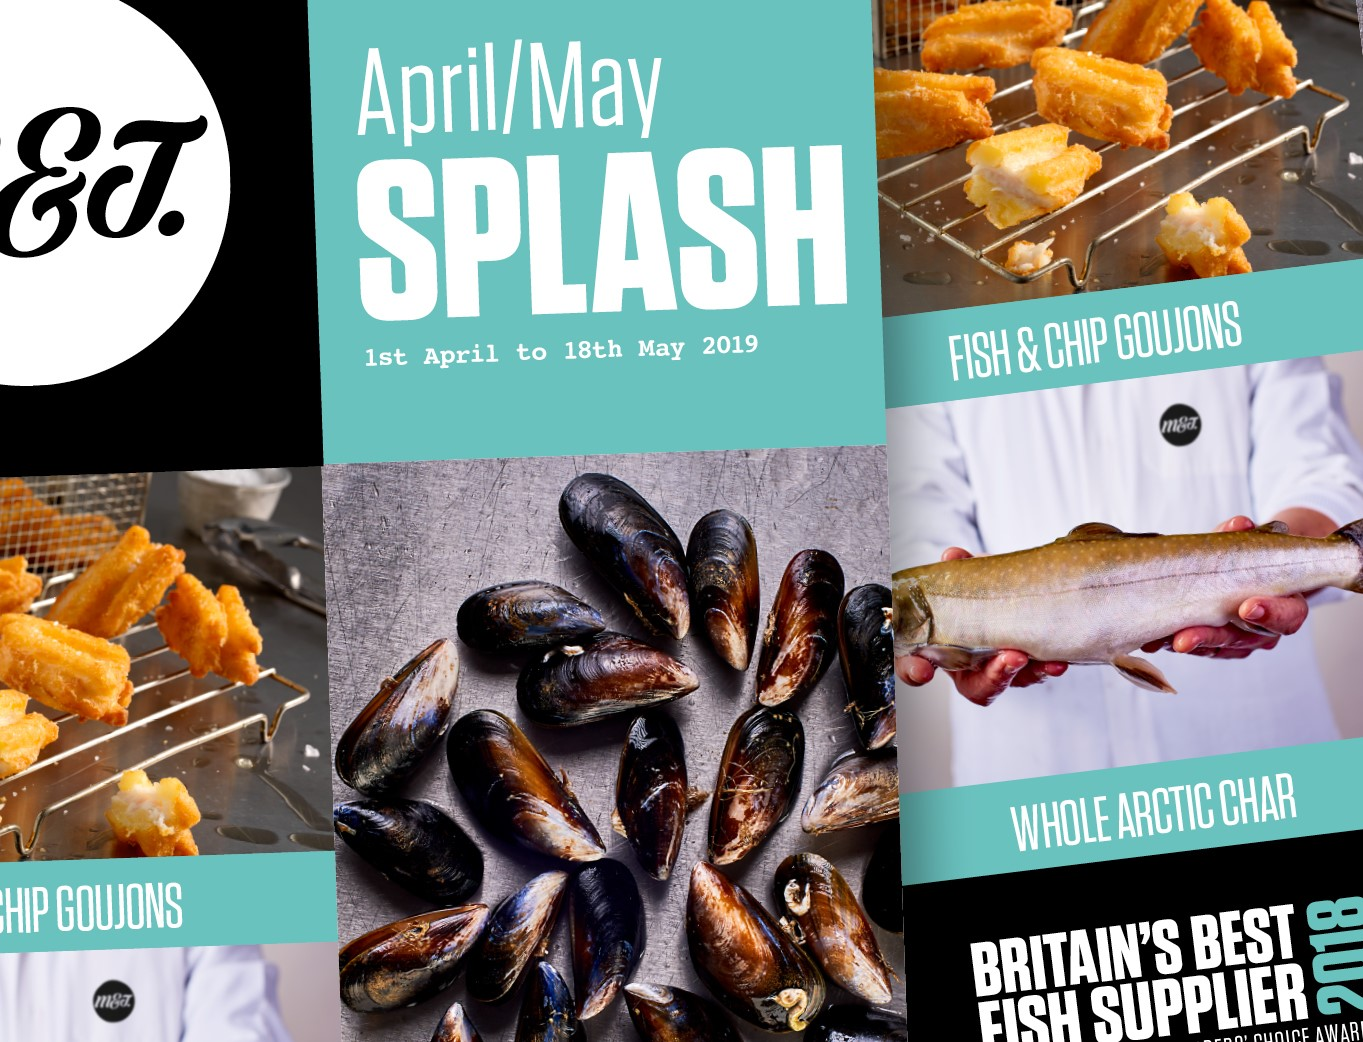 Splash - April/May